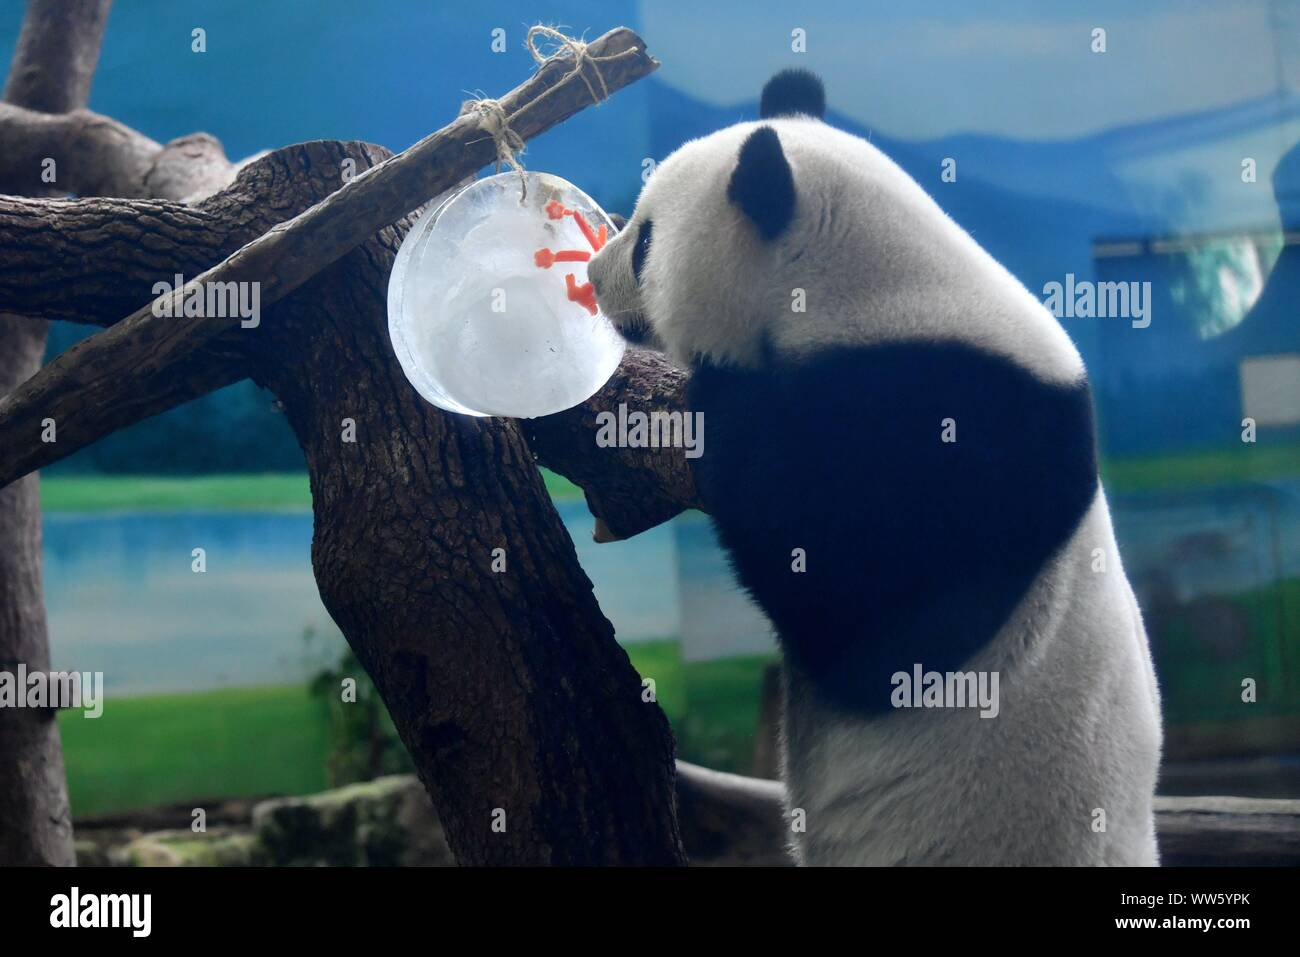 Taipei's Taiwan. 13th Sep, 2019. Giant panda Yuanzai tastes a piece of ice in the shape of mooncake at Taipei Zoo in Taipei, southeast China's Taiwan, Sept. 13, 2019. Mooncakes and skewered fruits and vegetables were specially made by the staff of Taipei Zoo for giant pandas to celebrate the the Mid-Autumn Festival. Credit: Chen Bin/Xinhua/Alamy Live News Stock Photo